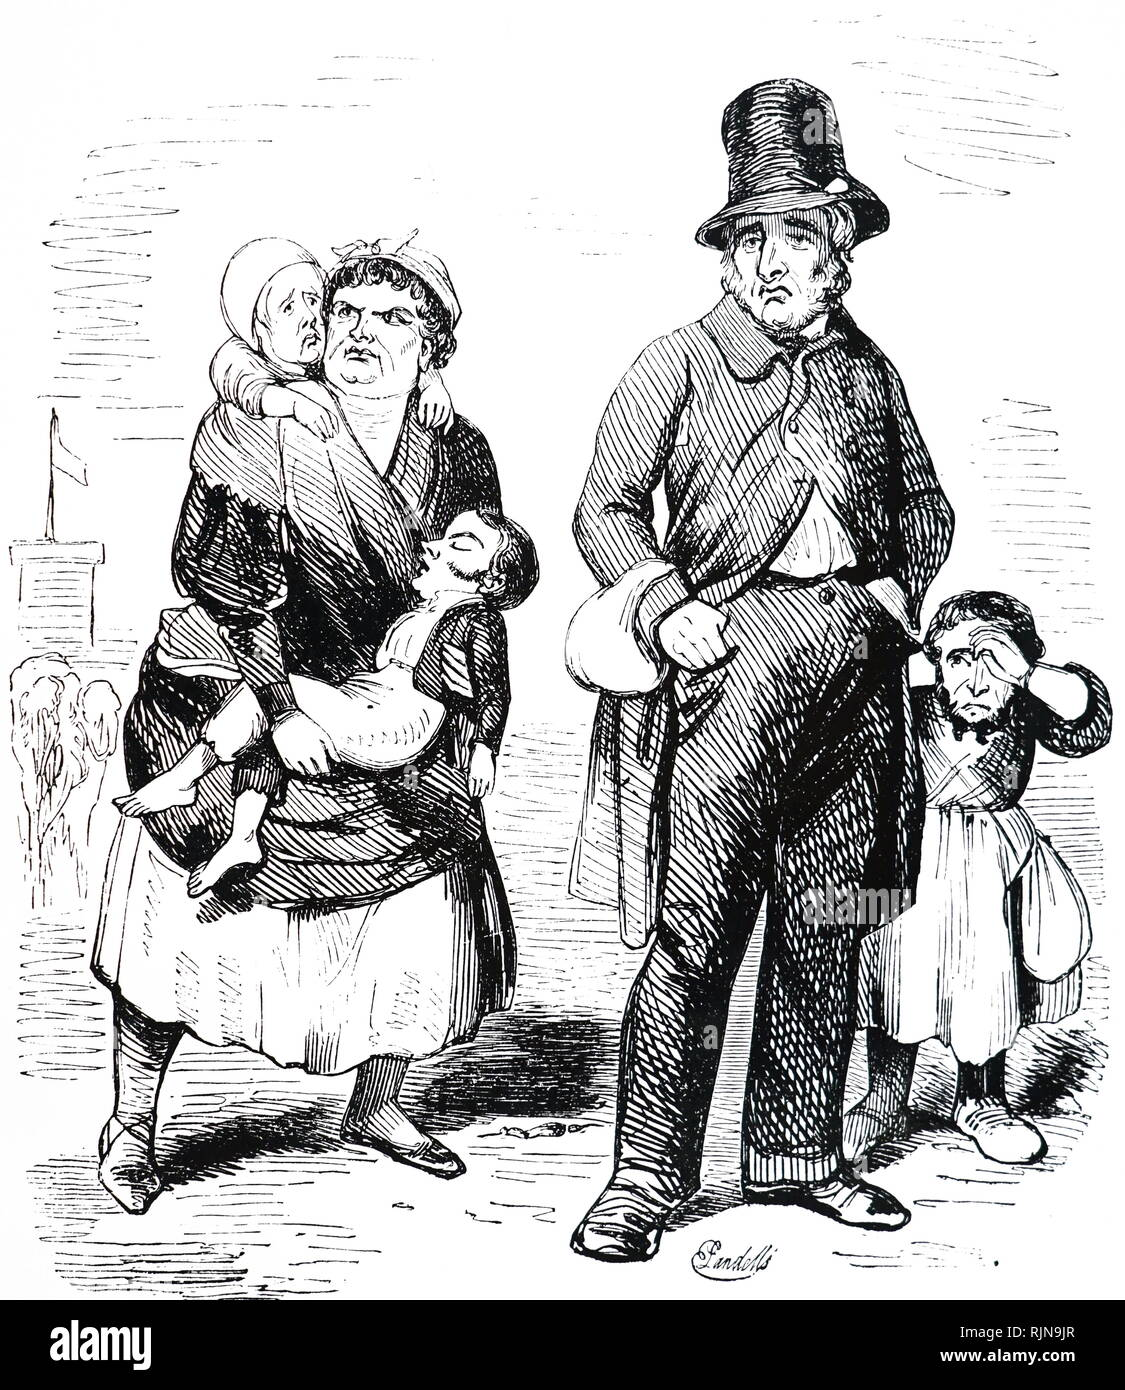 A cartoon depicting Members of Parliament without a home because of the strike of masons during the building of the new Palace of Westminster. Dated 19th century - Stock Image